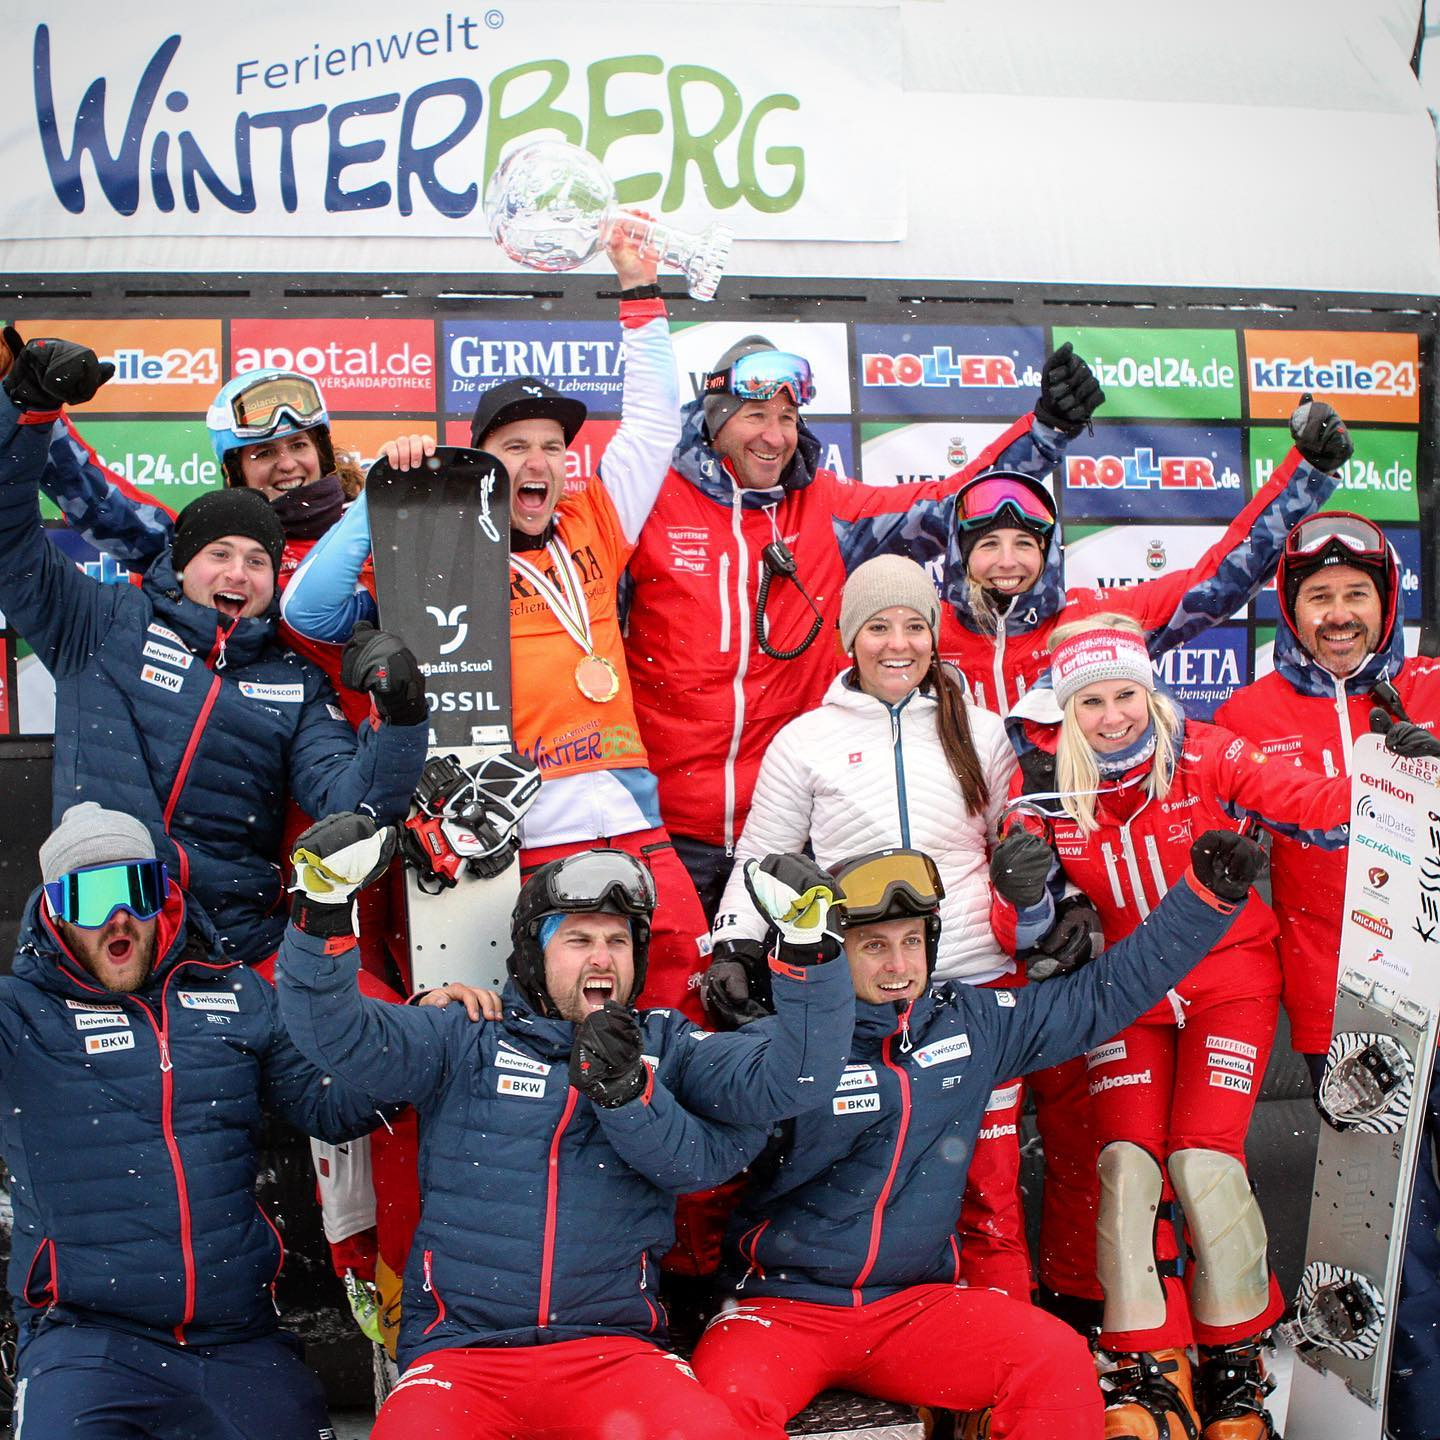 I wish my team mates all the best for tomorrow's @fissnowboard Worldcup start in Russia. Kick ass and bring home some trophies! 🏼 . . . @snowboardalpineteam 🤘🏽 . . . I'll be at home watching the YouTube livestream 🧐 Go Switzerland 🇨🇭!